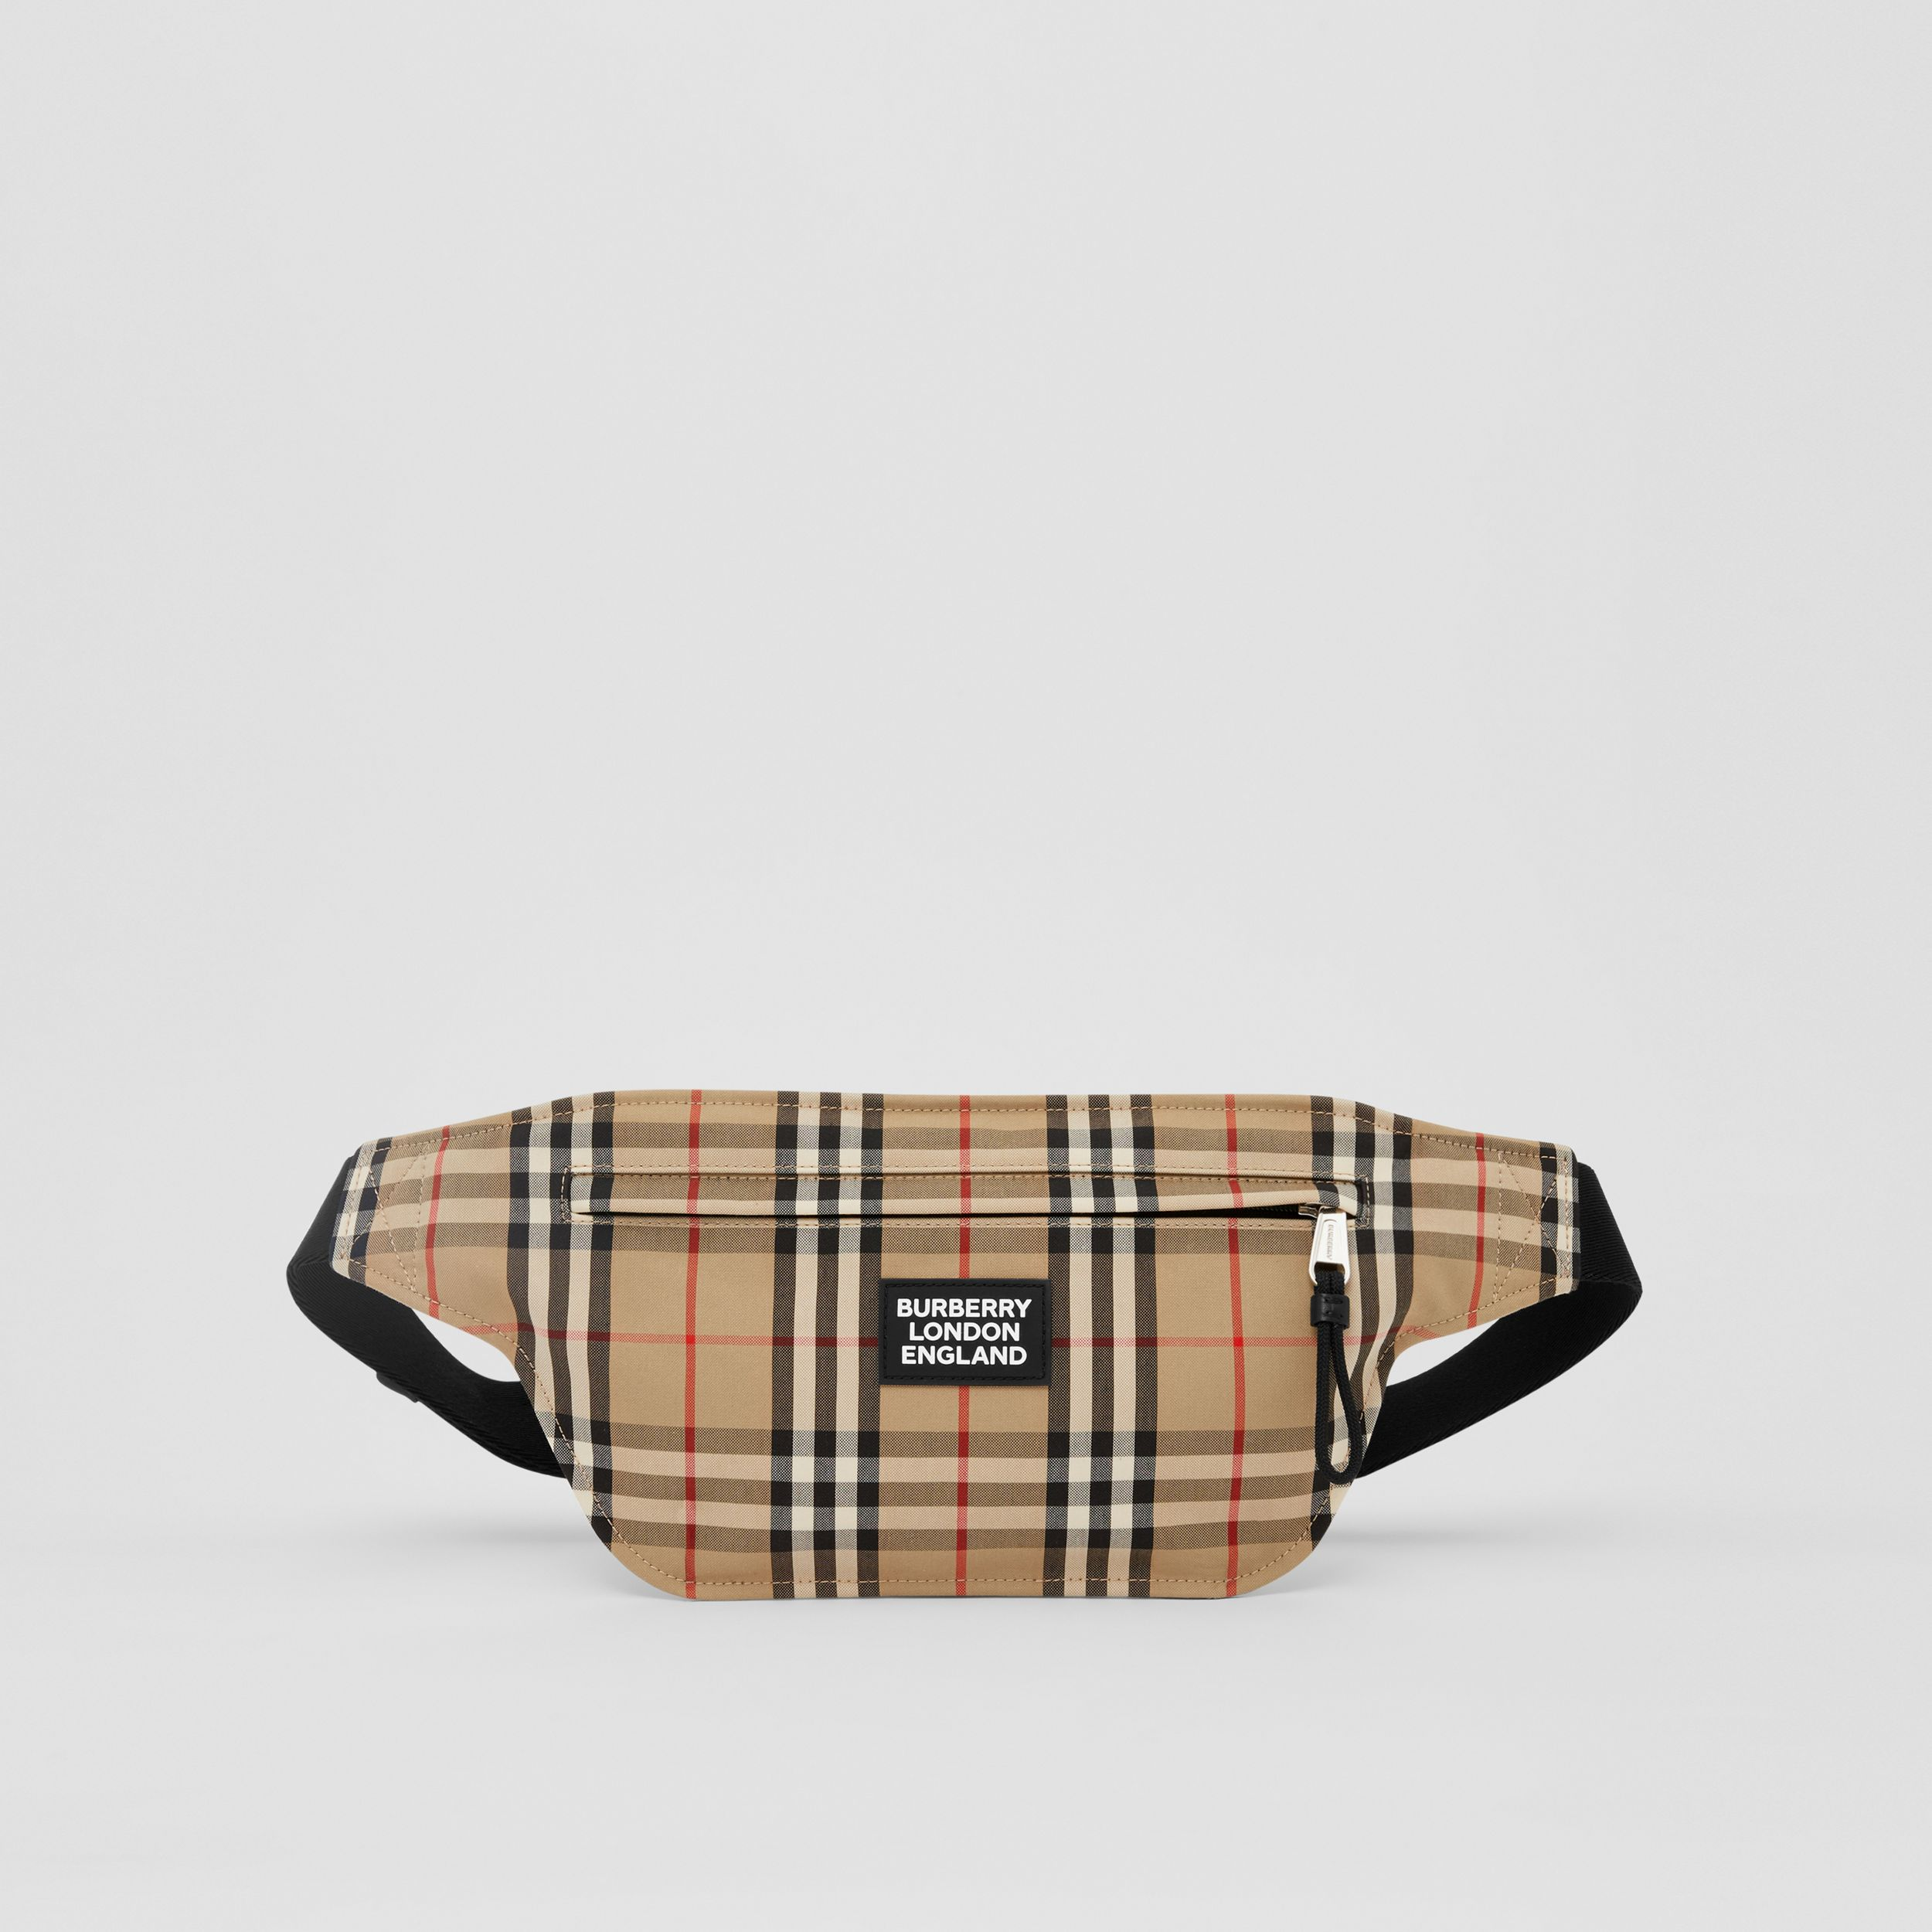 Logo Appliqué Vintage Check Brummell Bum Bag in Archive Beige | Burberry - 1